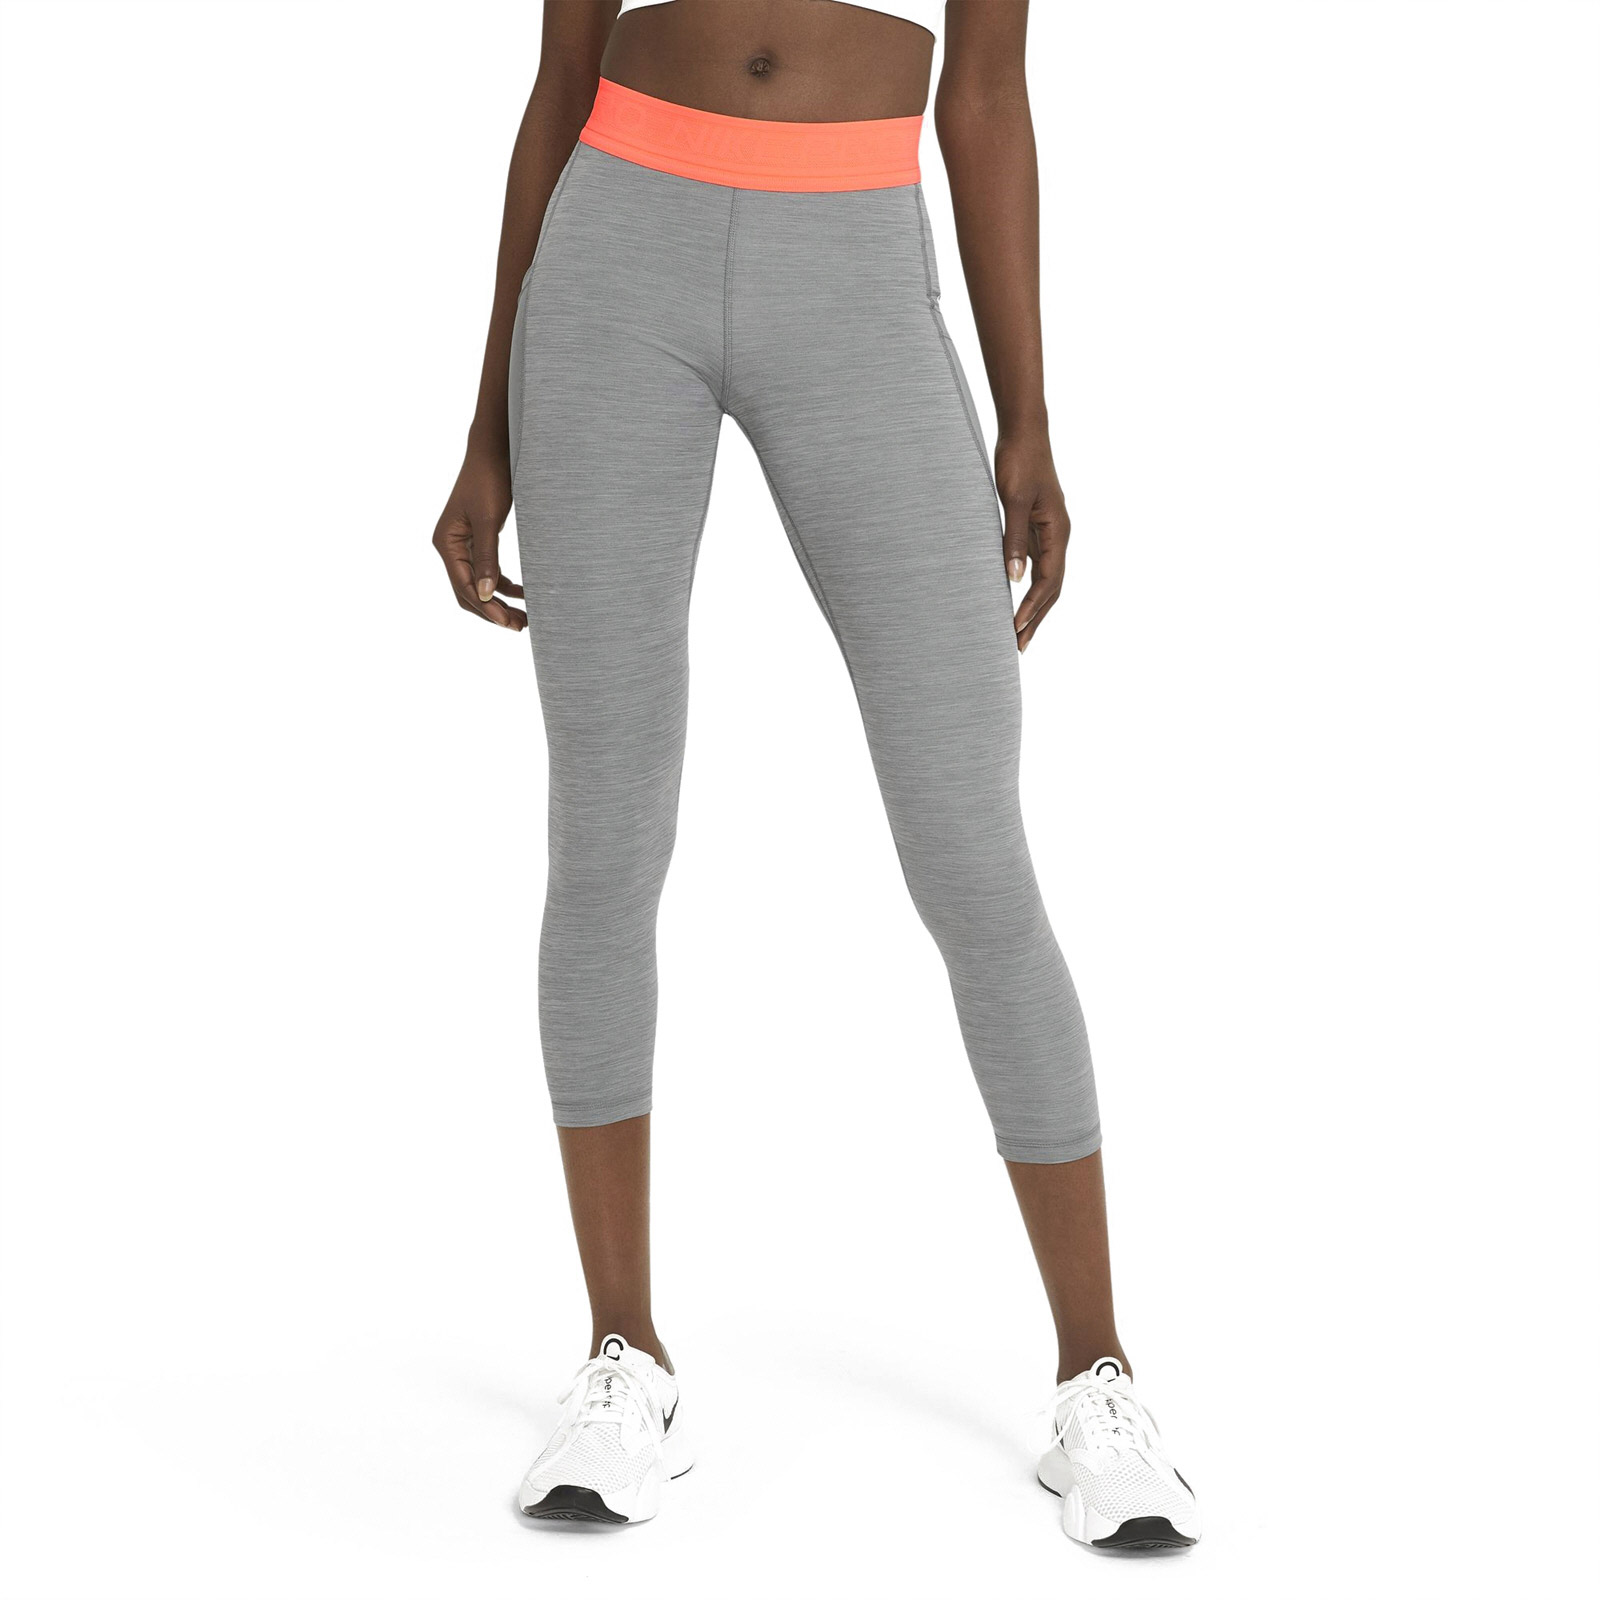 Nike Women's Pro Femme 7/8 Tight, Grey